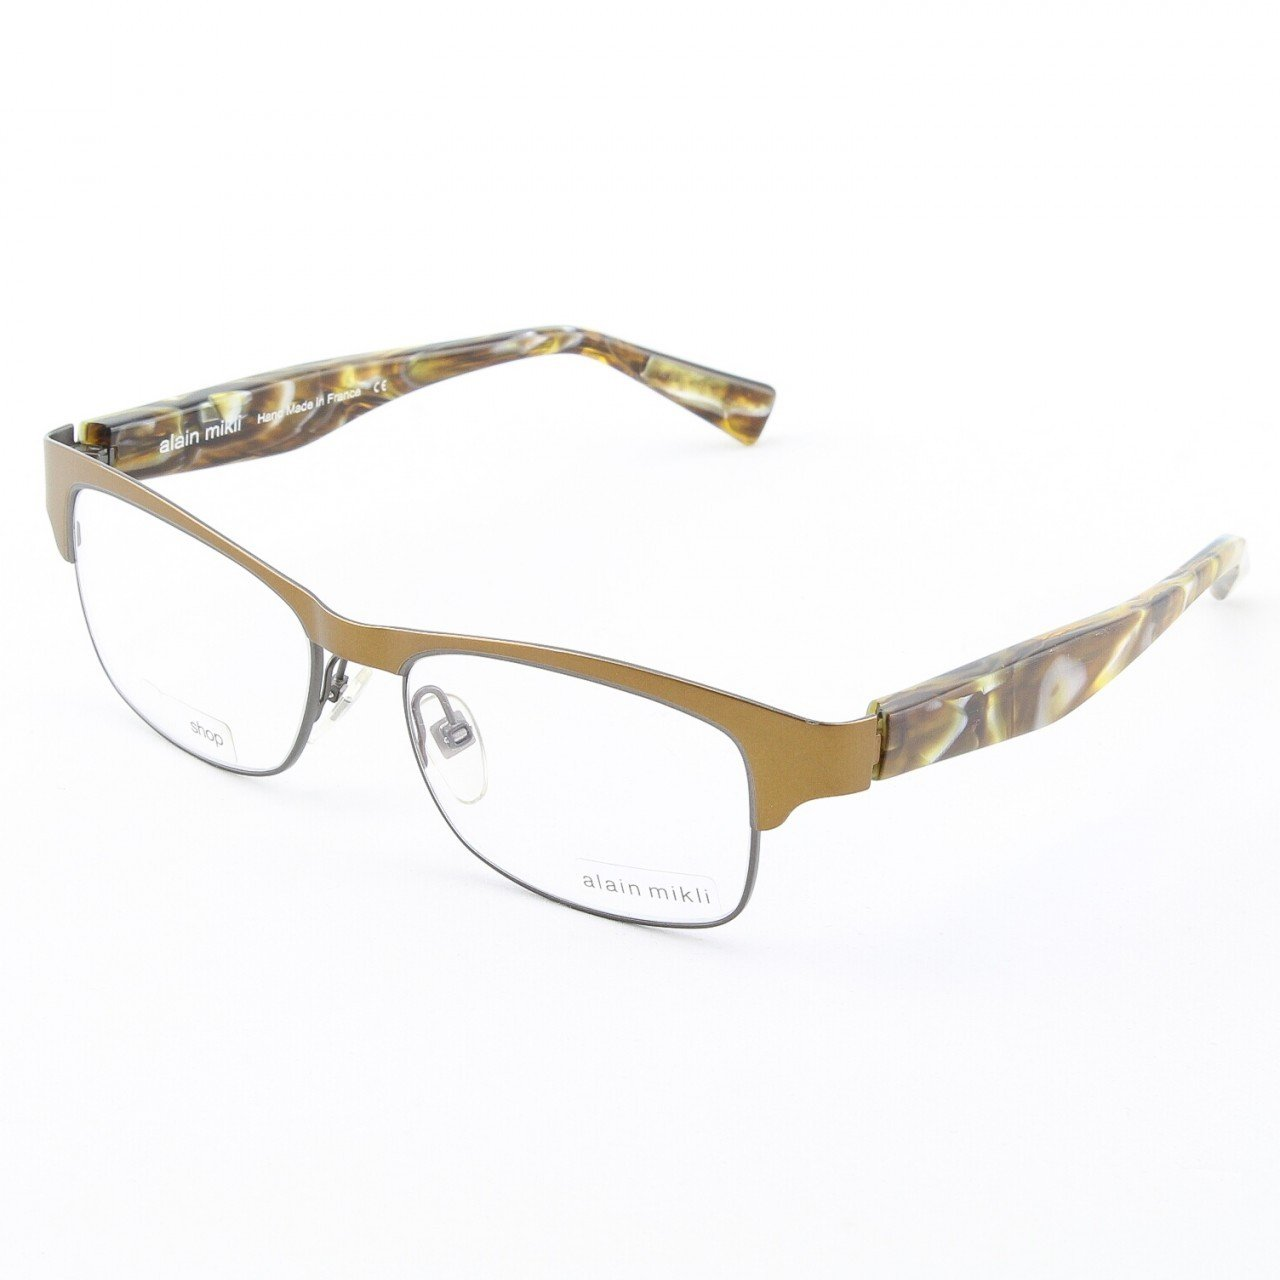 Alain Mikli Eyeglasses AL1052 Col. 201 Copper with Pearlized Gold Tortoise Temples